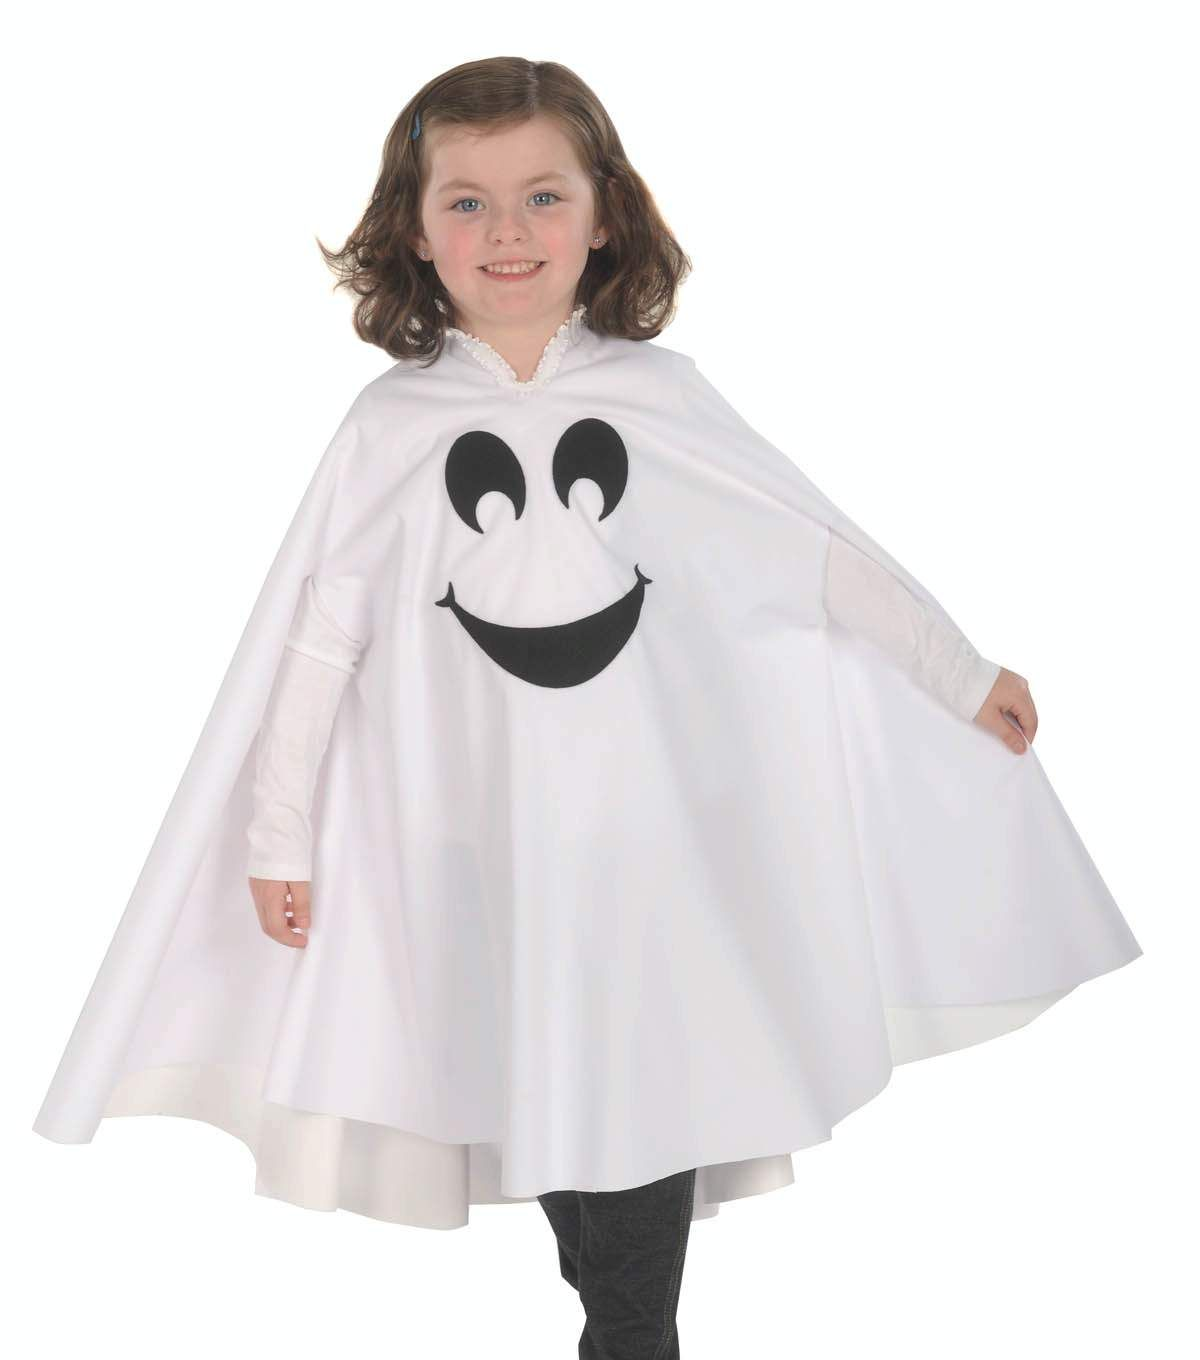 stay dry ghost costume